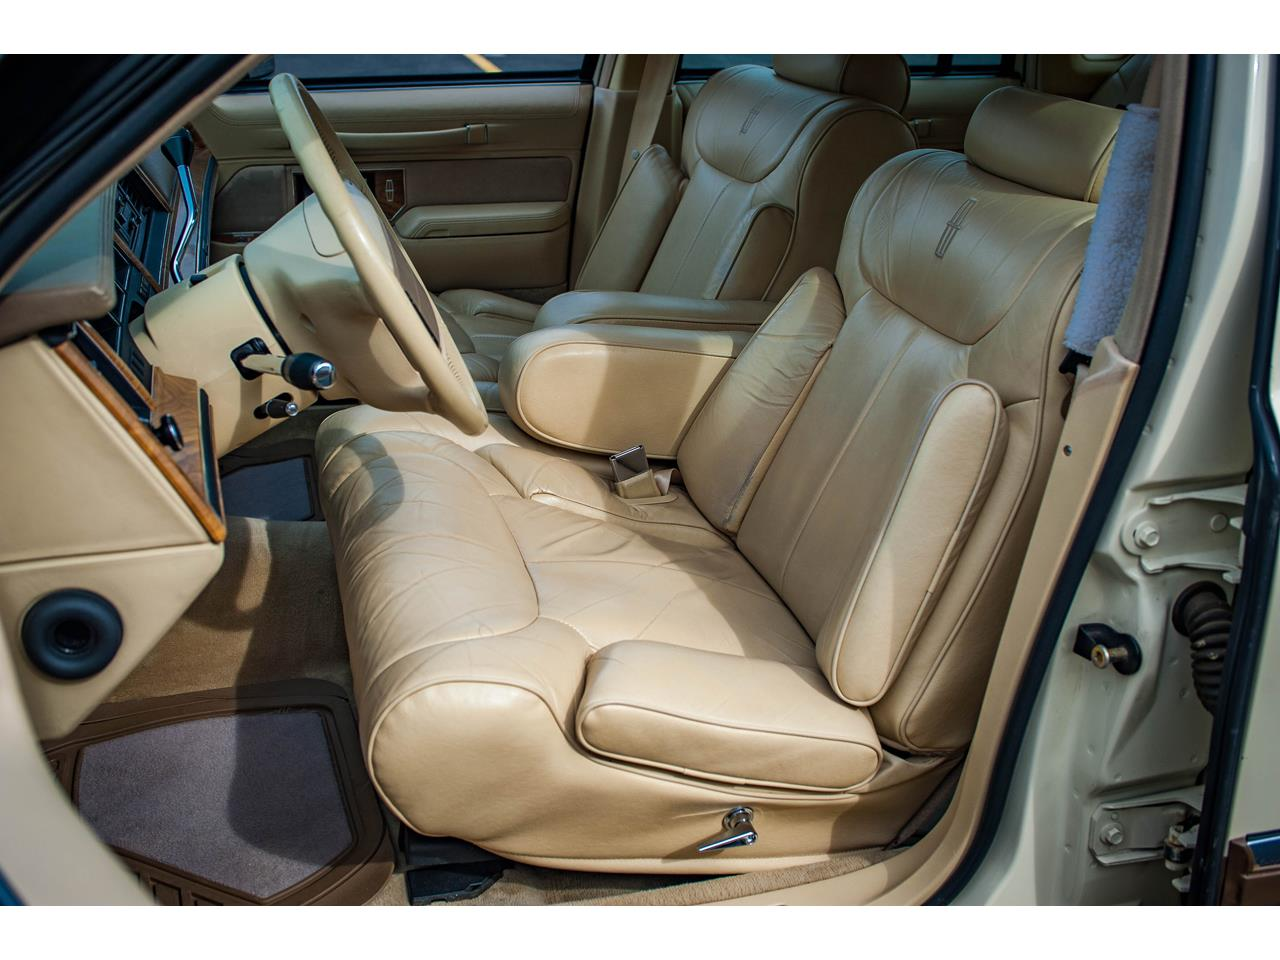 Large Picture of '90 Town Car - $16,500.00 Offered by Gateway Classic Cars - St. Louis - QB8G